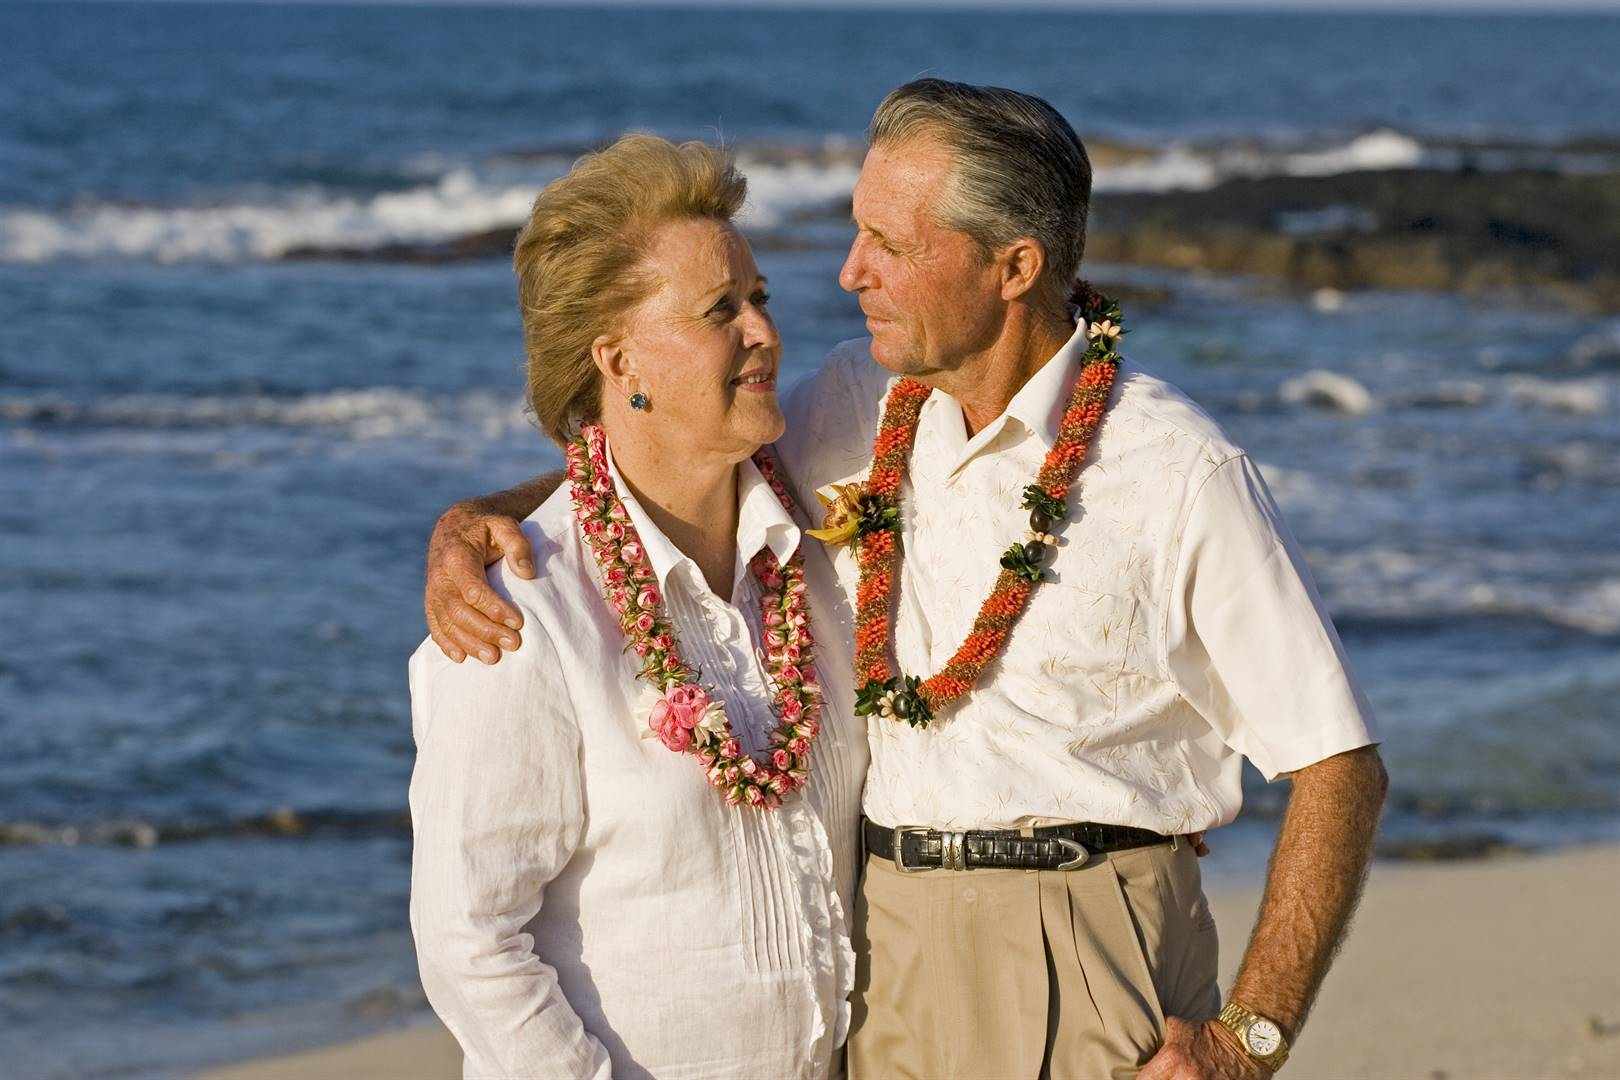 Gary Player and Vivienne Player when they were celebrating their 50th wedding anniversary during the first round of the 2007 MasterCard Championship. Picture: Chris Condon / PGA